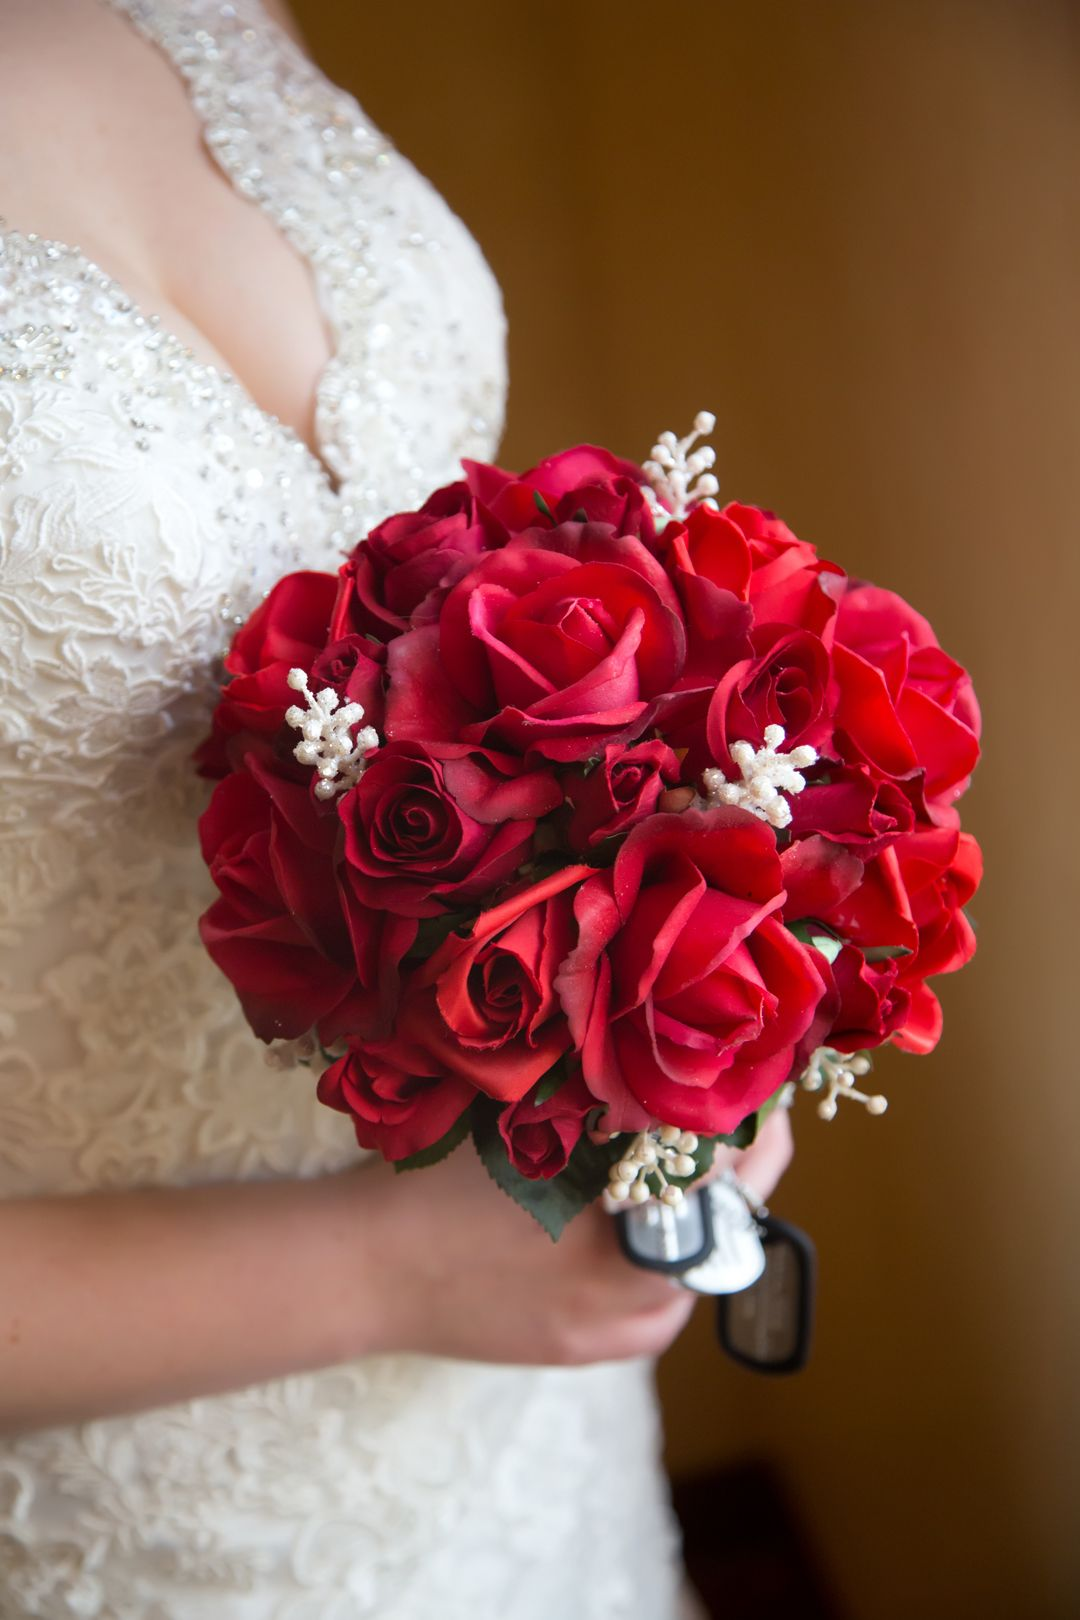 Real Touch red roses mixed with silk ones give this military bride's bouquet the most realistic look. (Photo by Redford and provided with permission by the couple.)